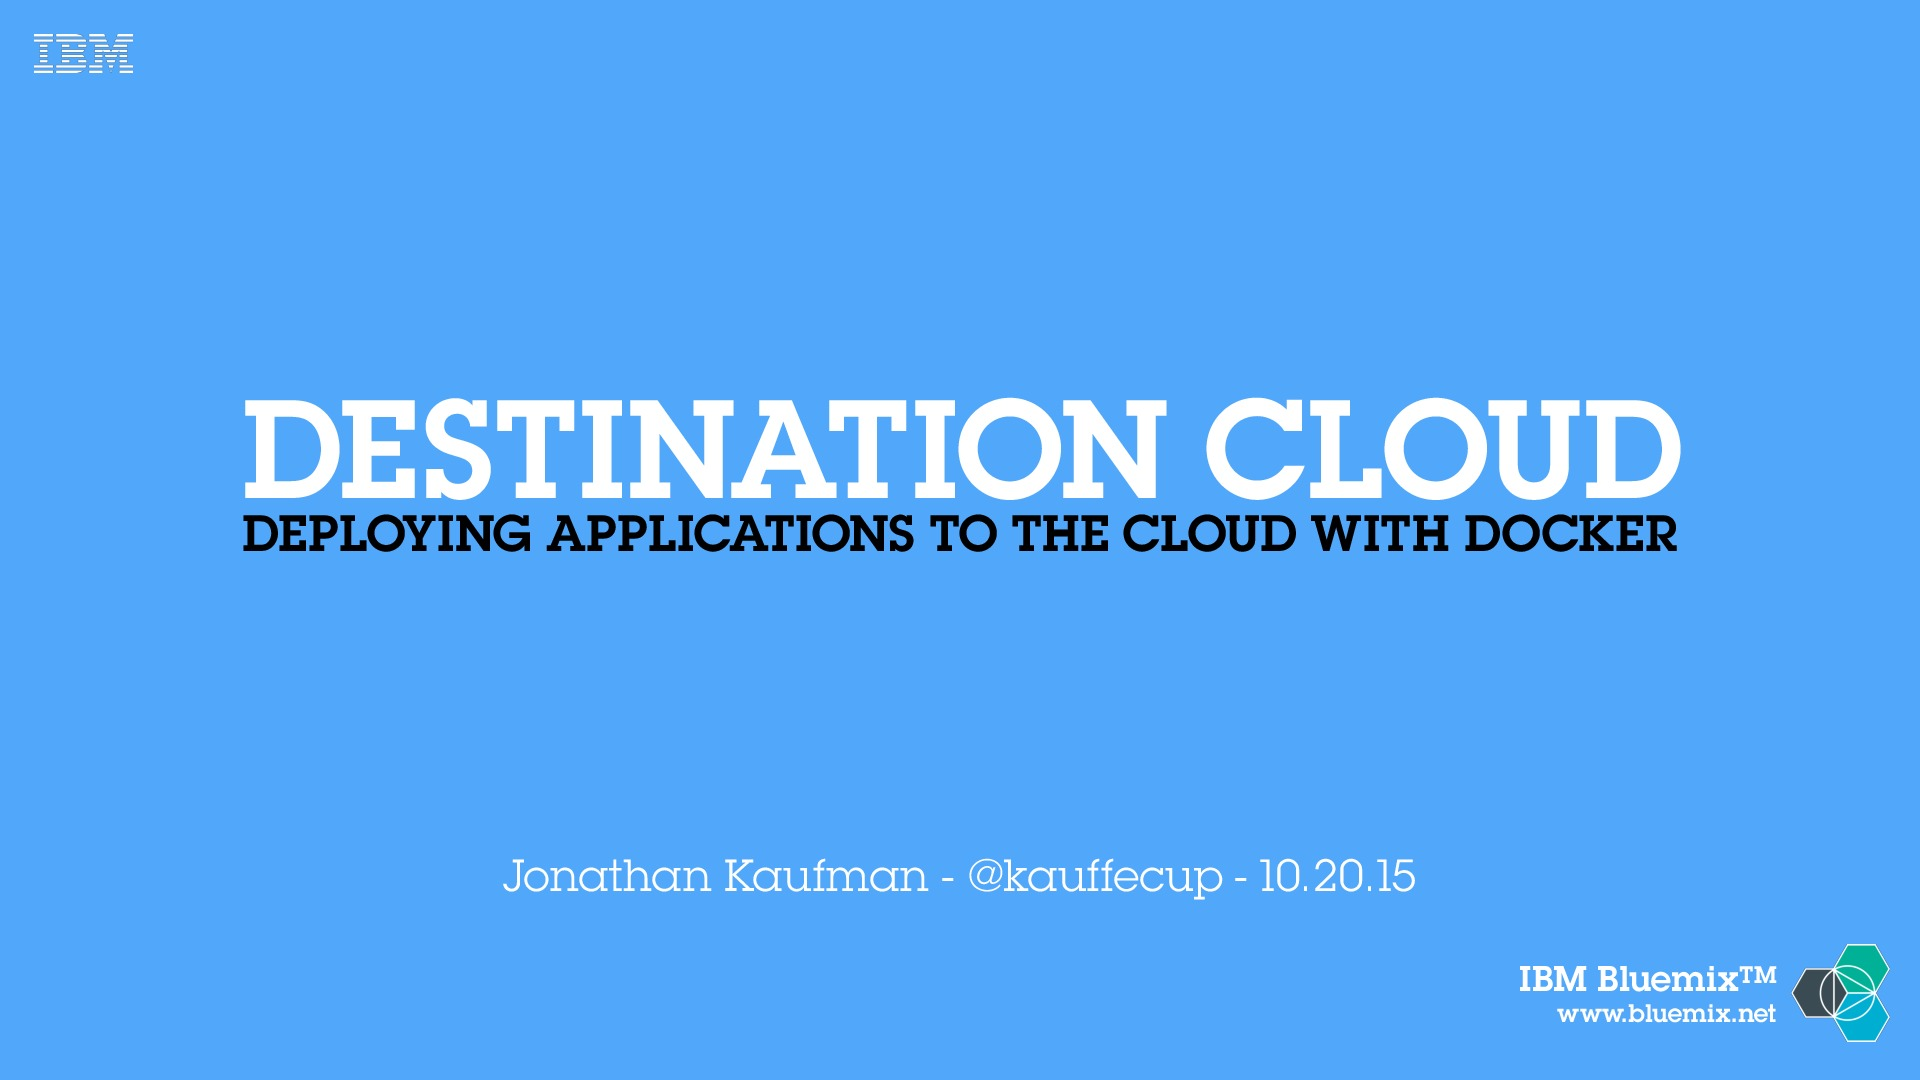 Destination Cloud: Deploying Applications To The Cloud With Docker